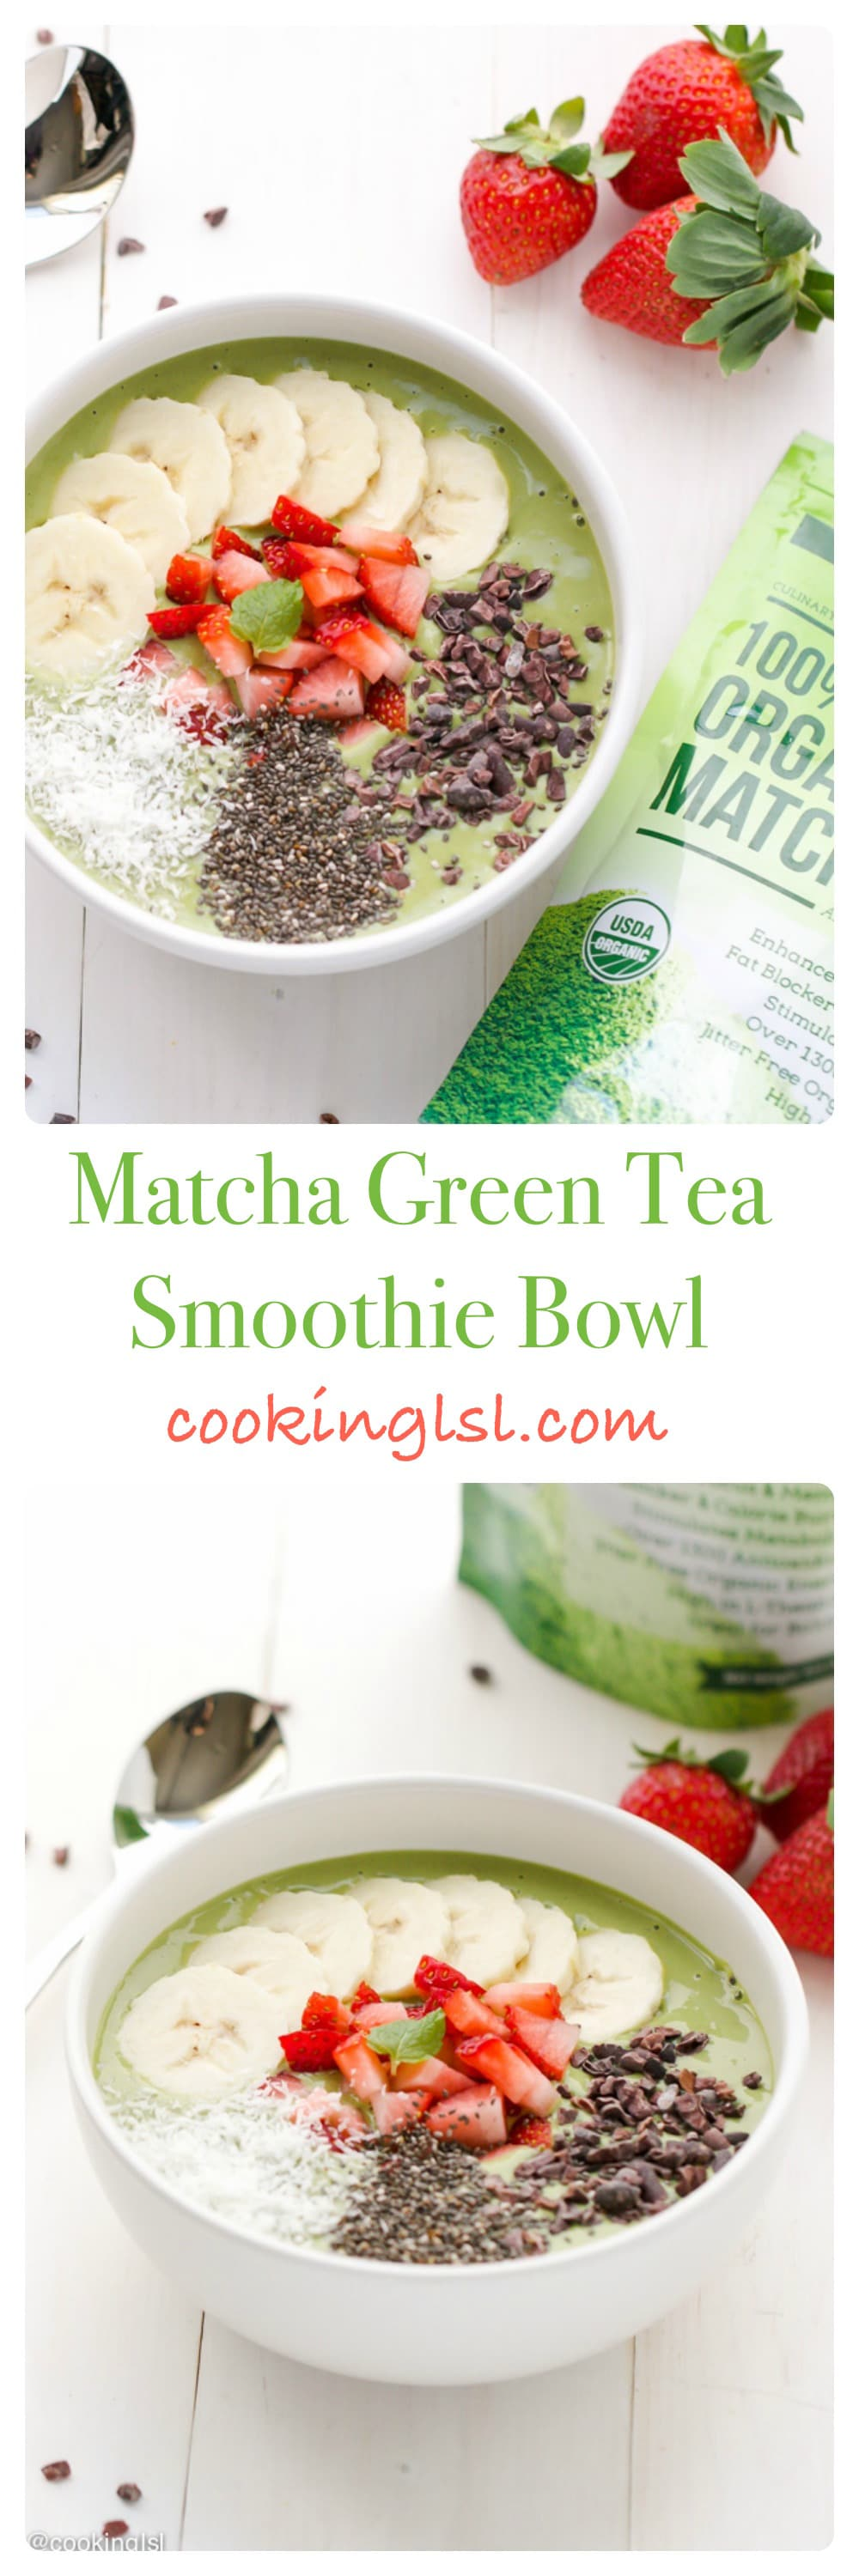 matcha-green-tea-smoothie-bowl-breakfast